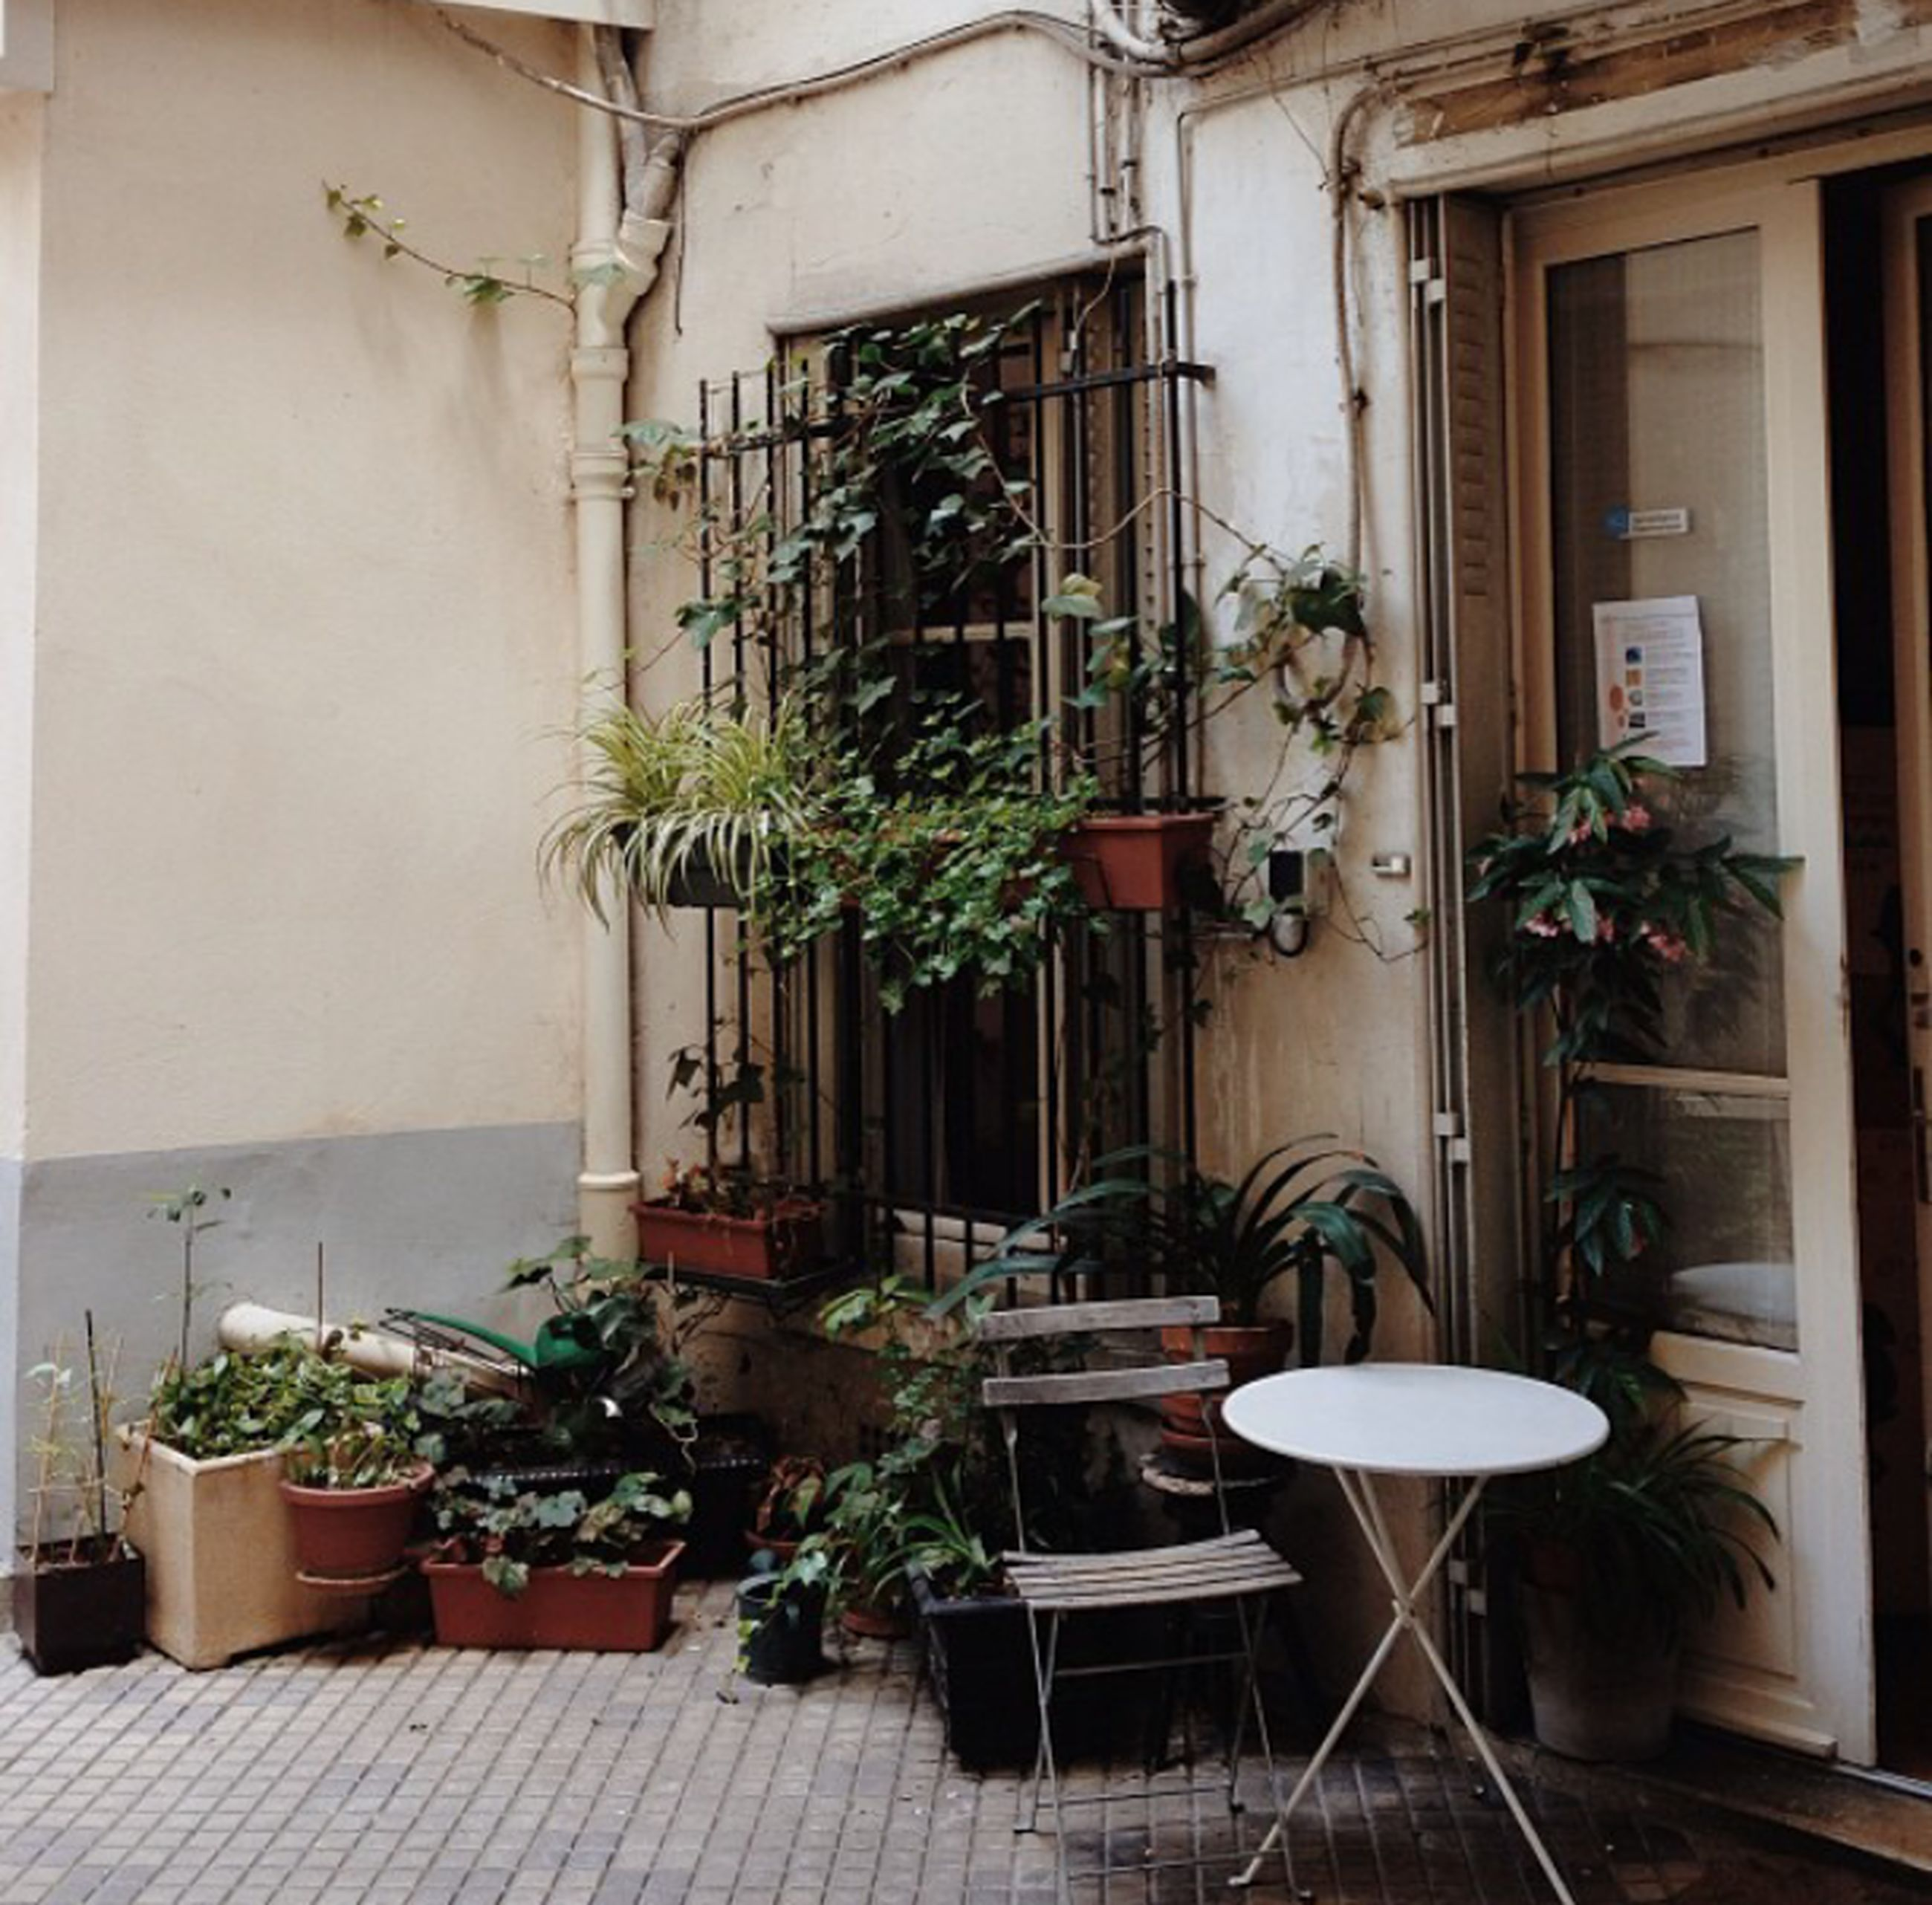 potted plant, architecture, built structure, plant, building exterior, growth, house, window, flower pot, pot plant, wall, residential structure, chair, no people, green color, day, door, residential building, balcony, wall - building feature